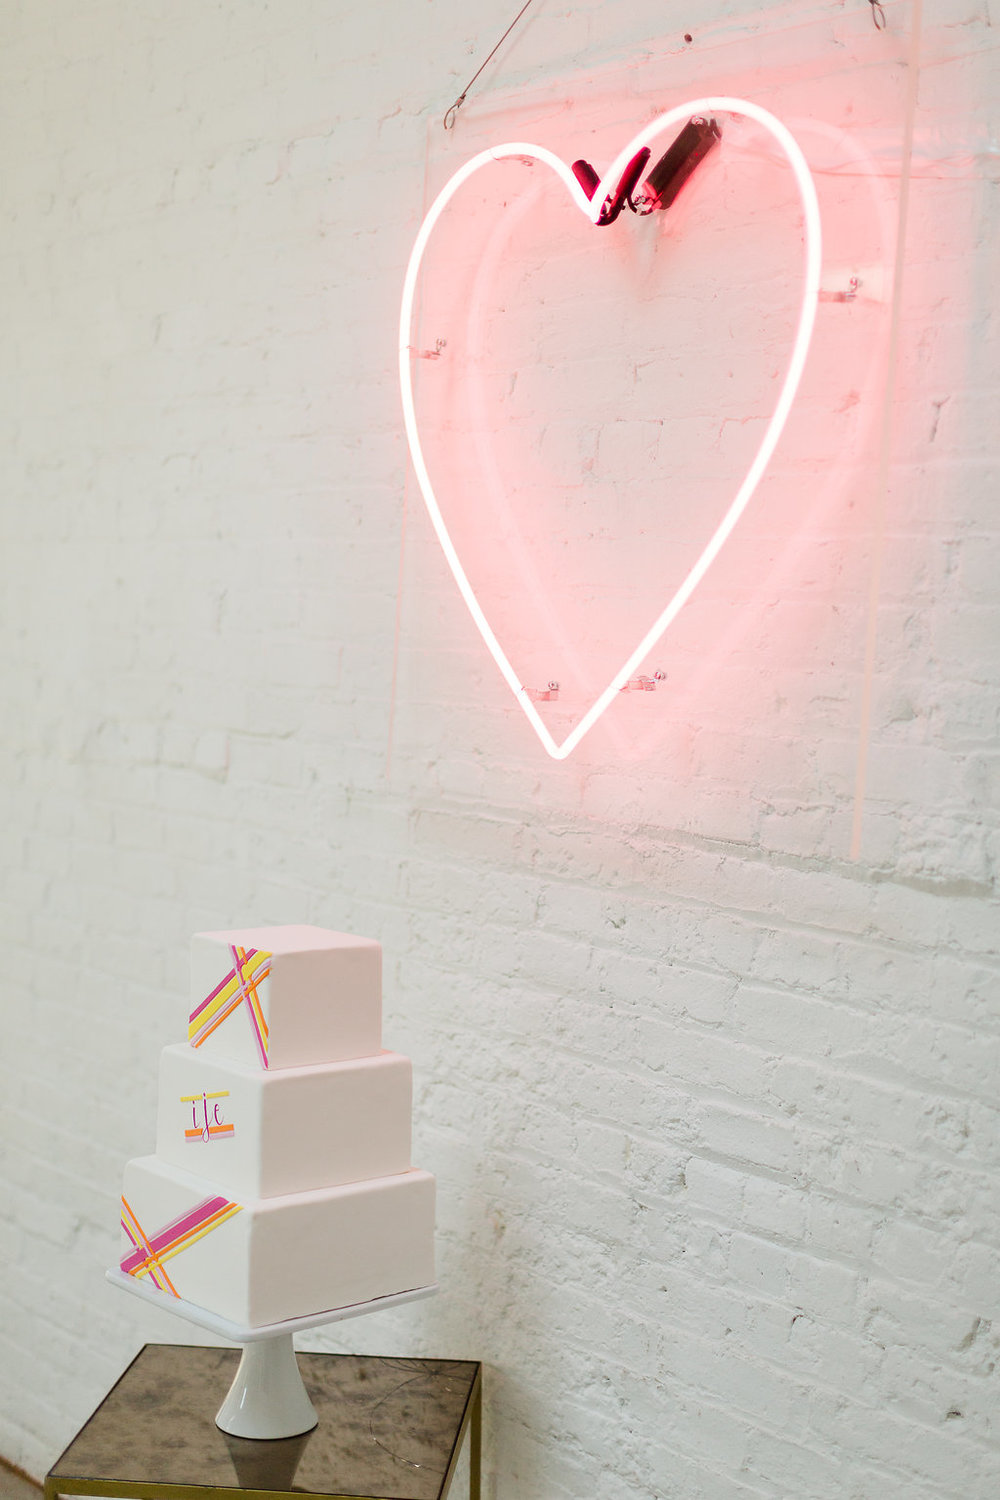 Modern Neon Wedding Cake / designed by Ashley Peraino + Ivey Weddings & Events / Cake by Erica O'Brien Cake Design / photo by Jessica Haley Photography